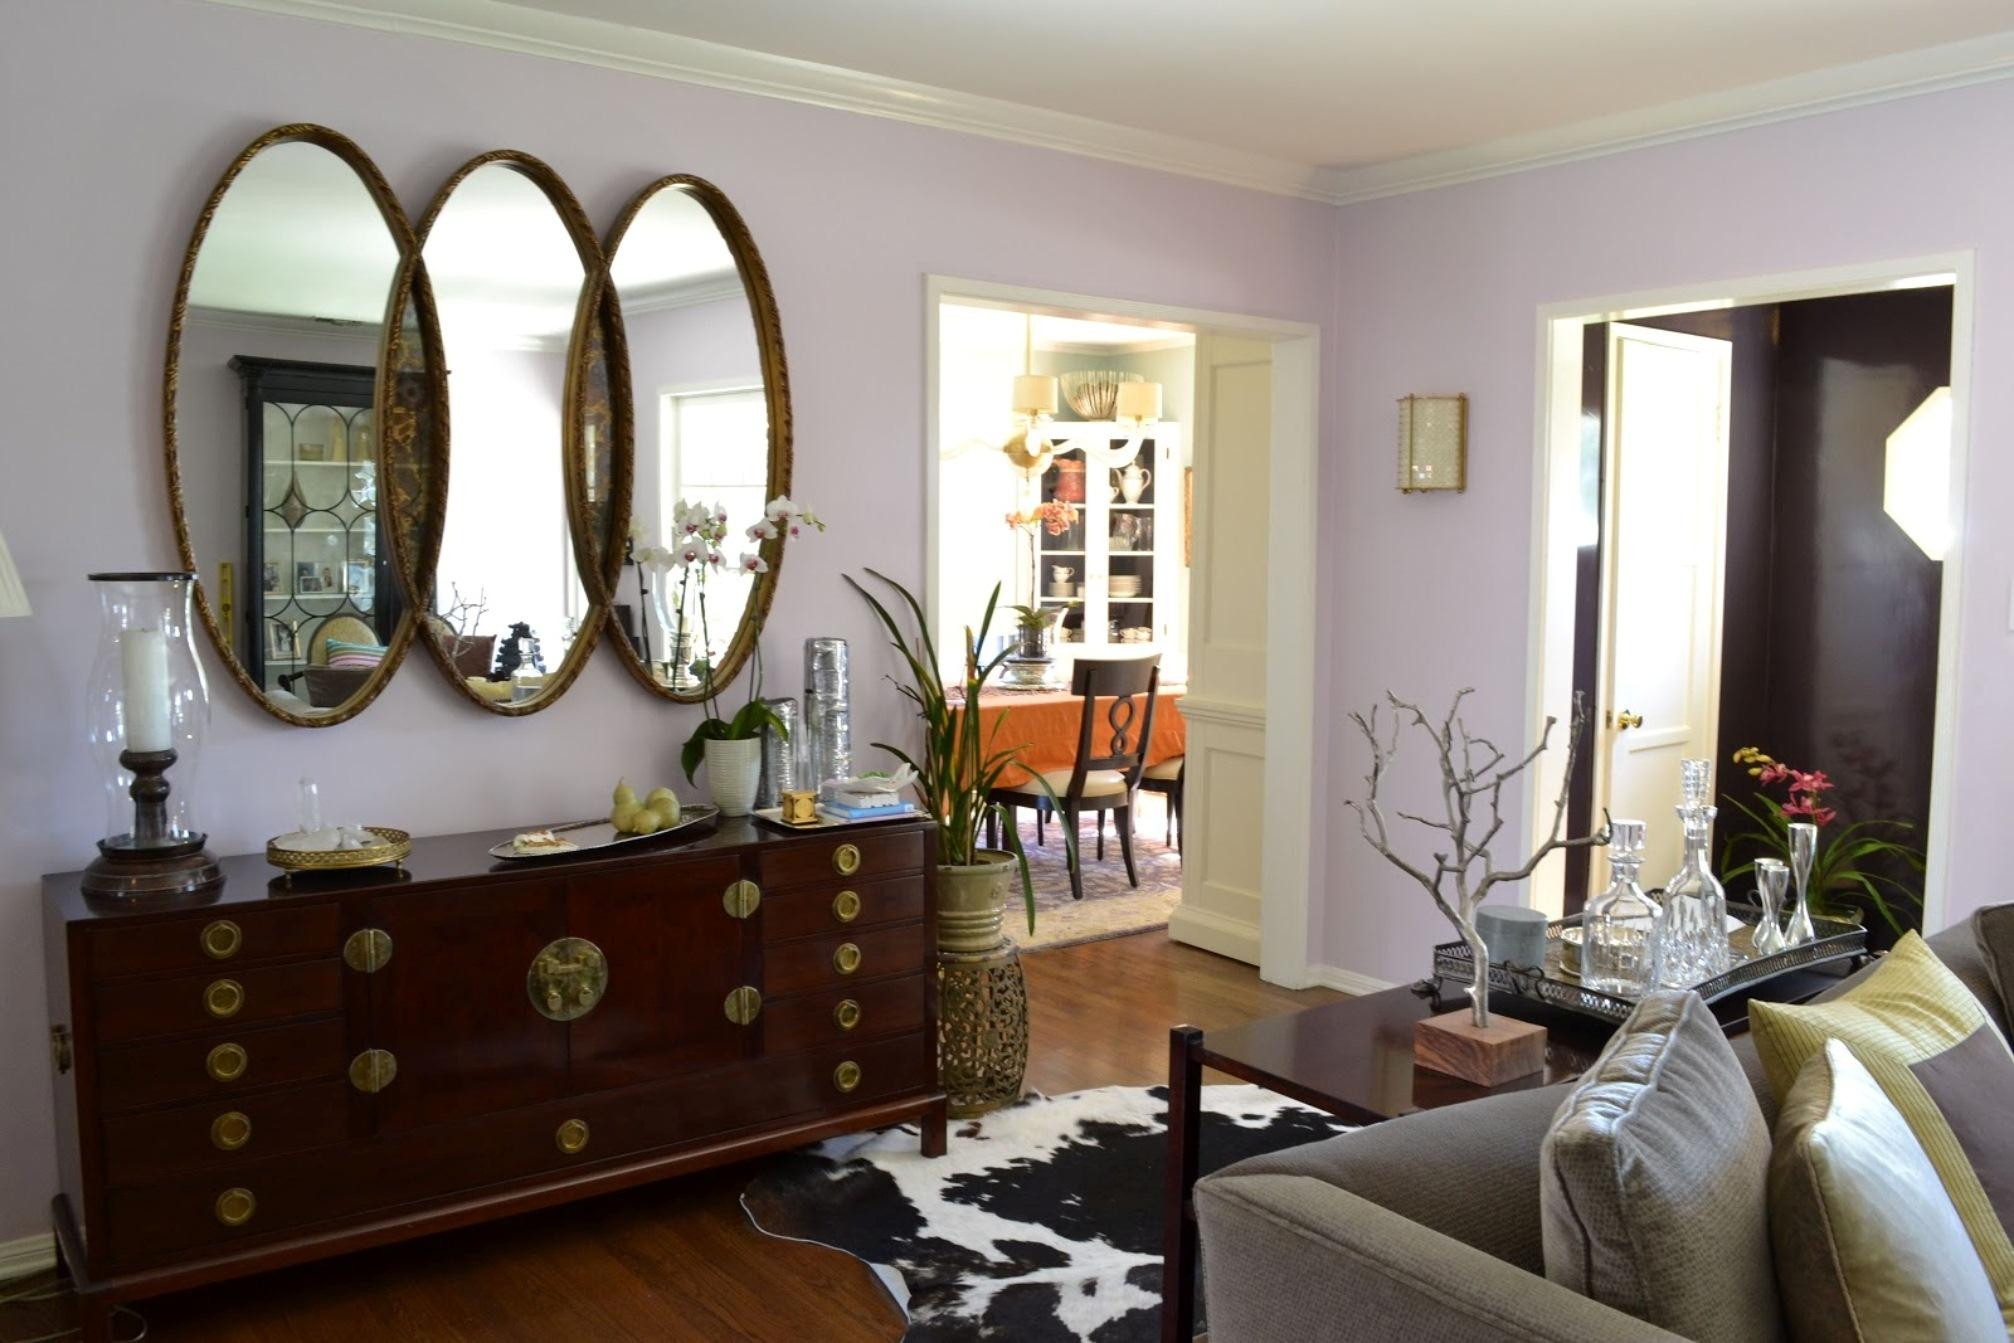 Living Room Mirrors Ideas 20 Mirrors for Living Room Walls